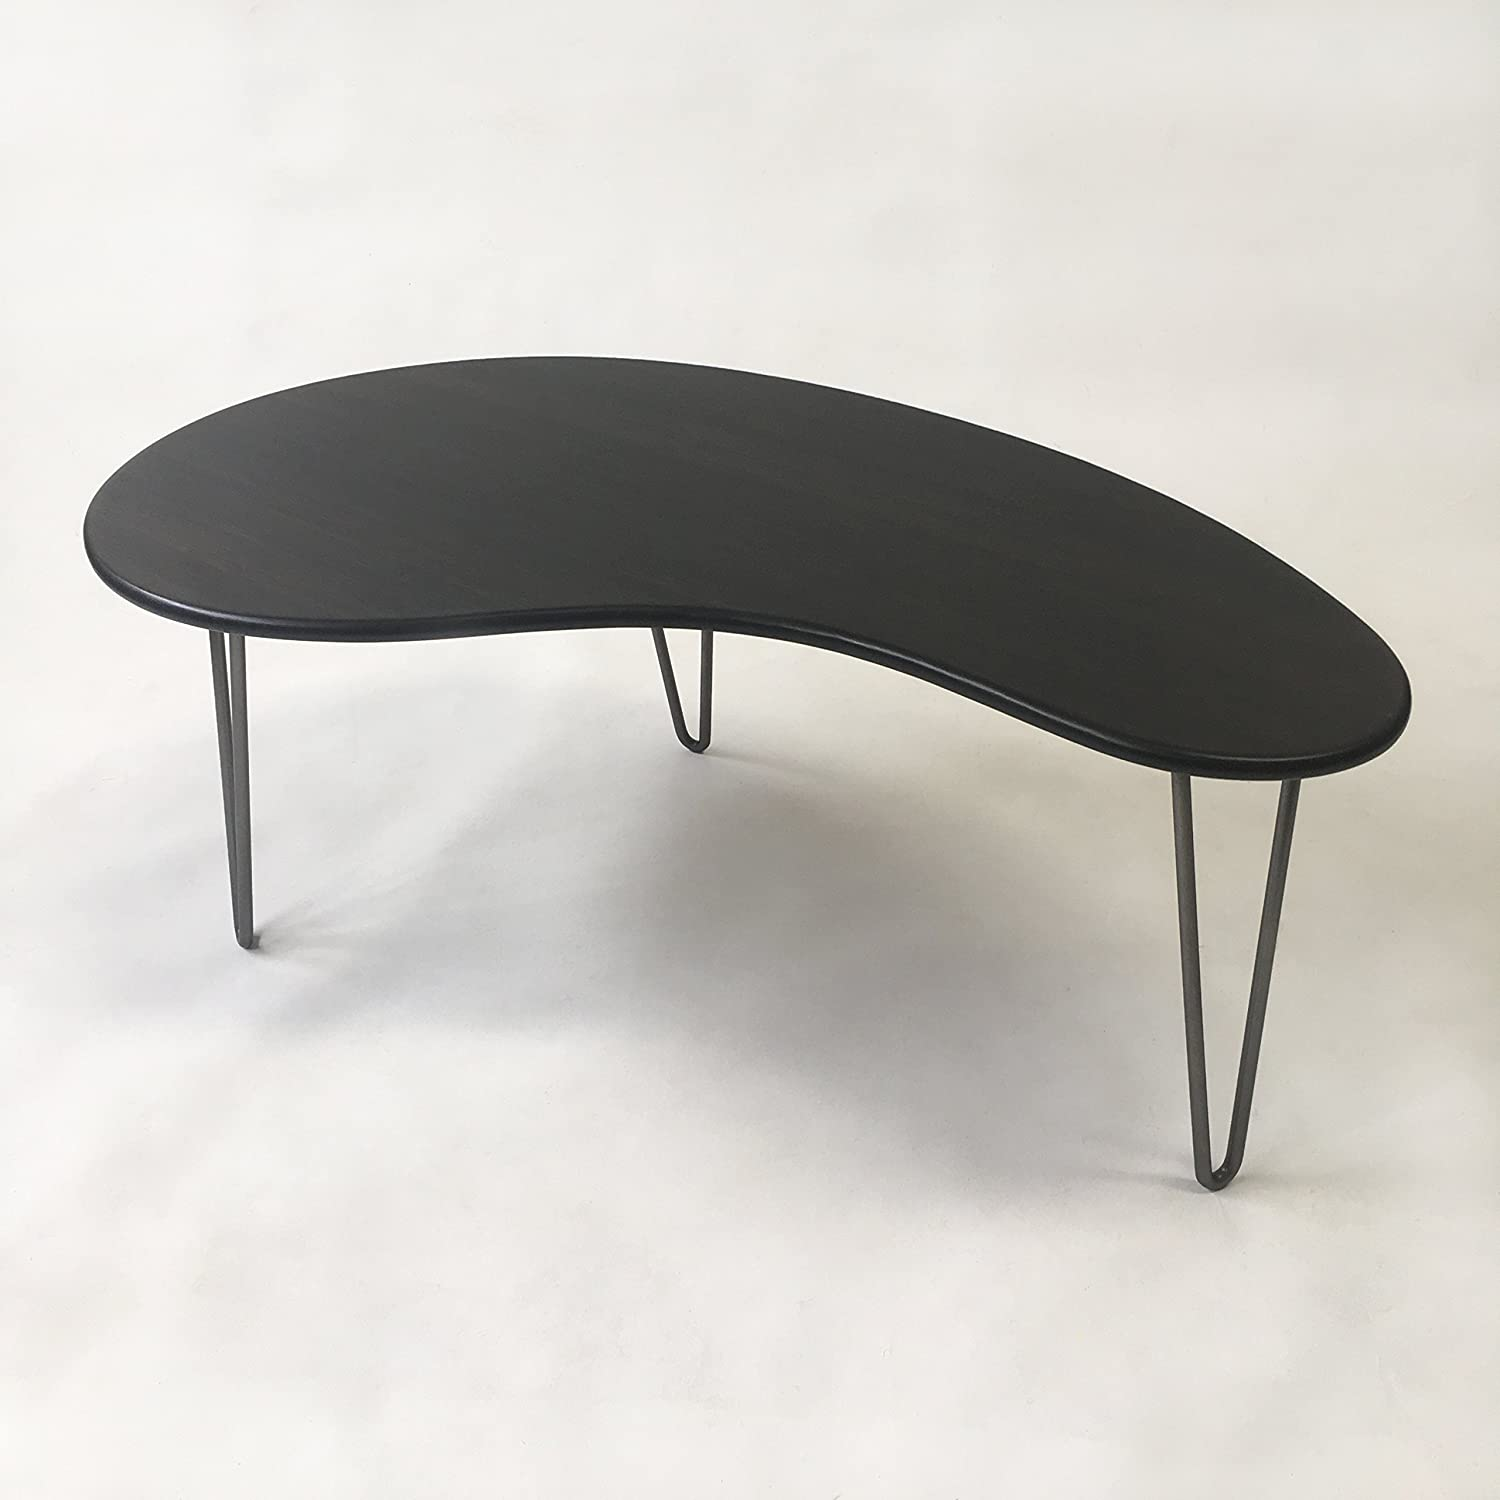 - Amazon.com: Black Mid Century Modern Coffee Table - Kidney Bean